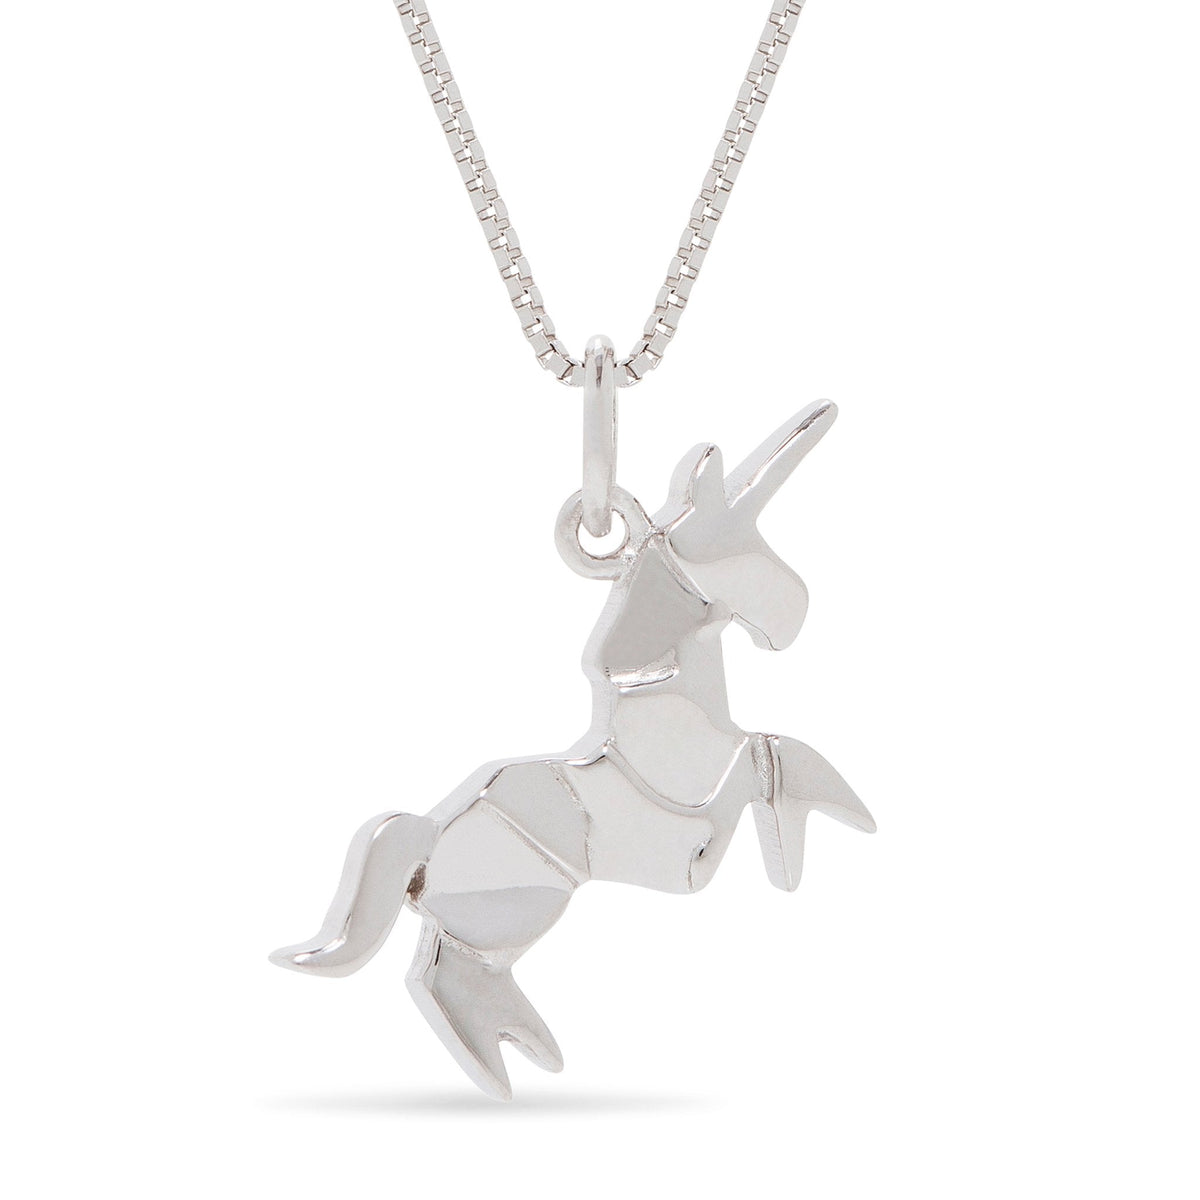 Origami Style Unicorn Necklace